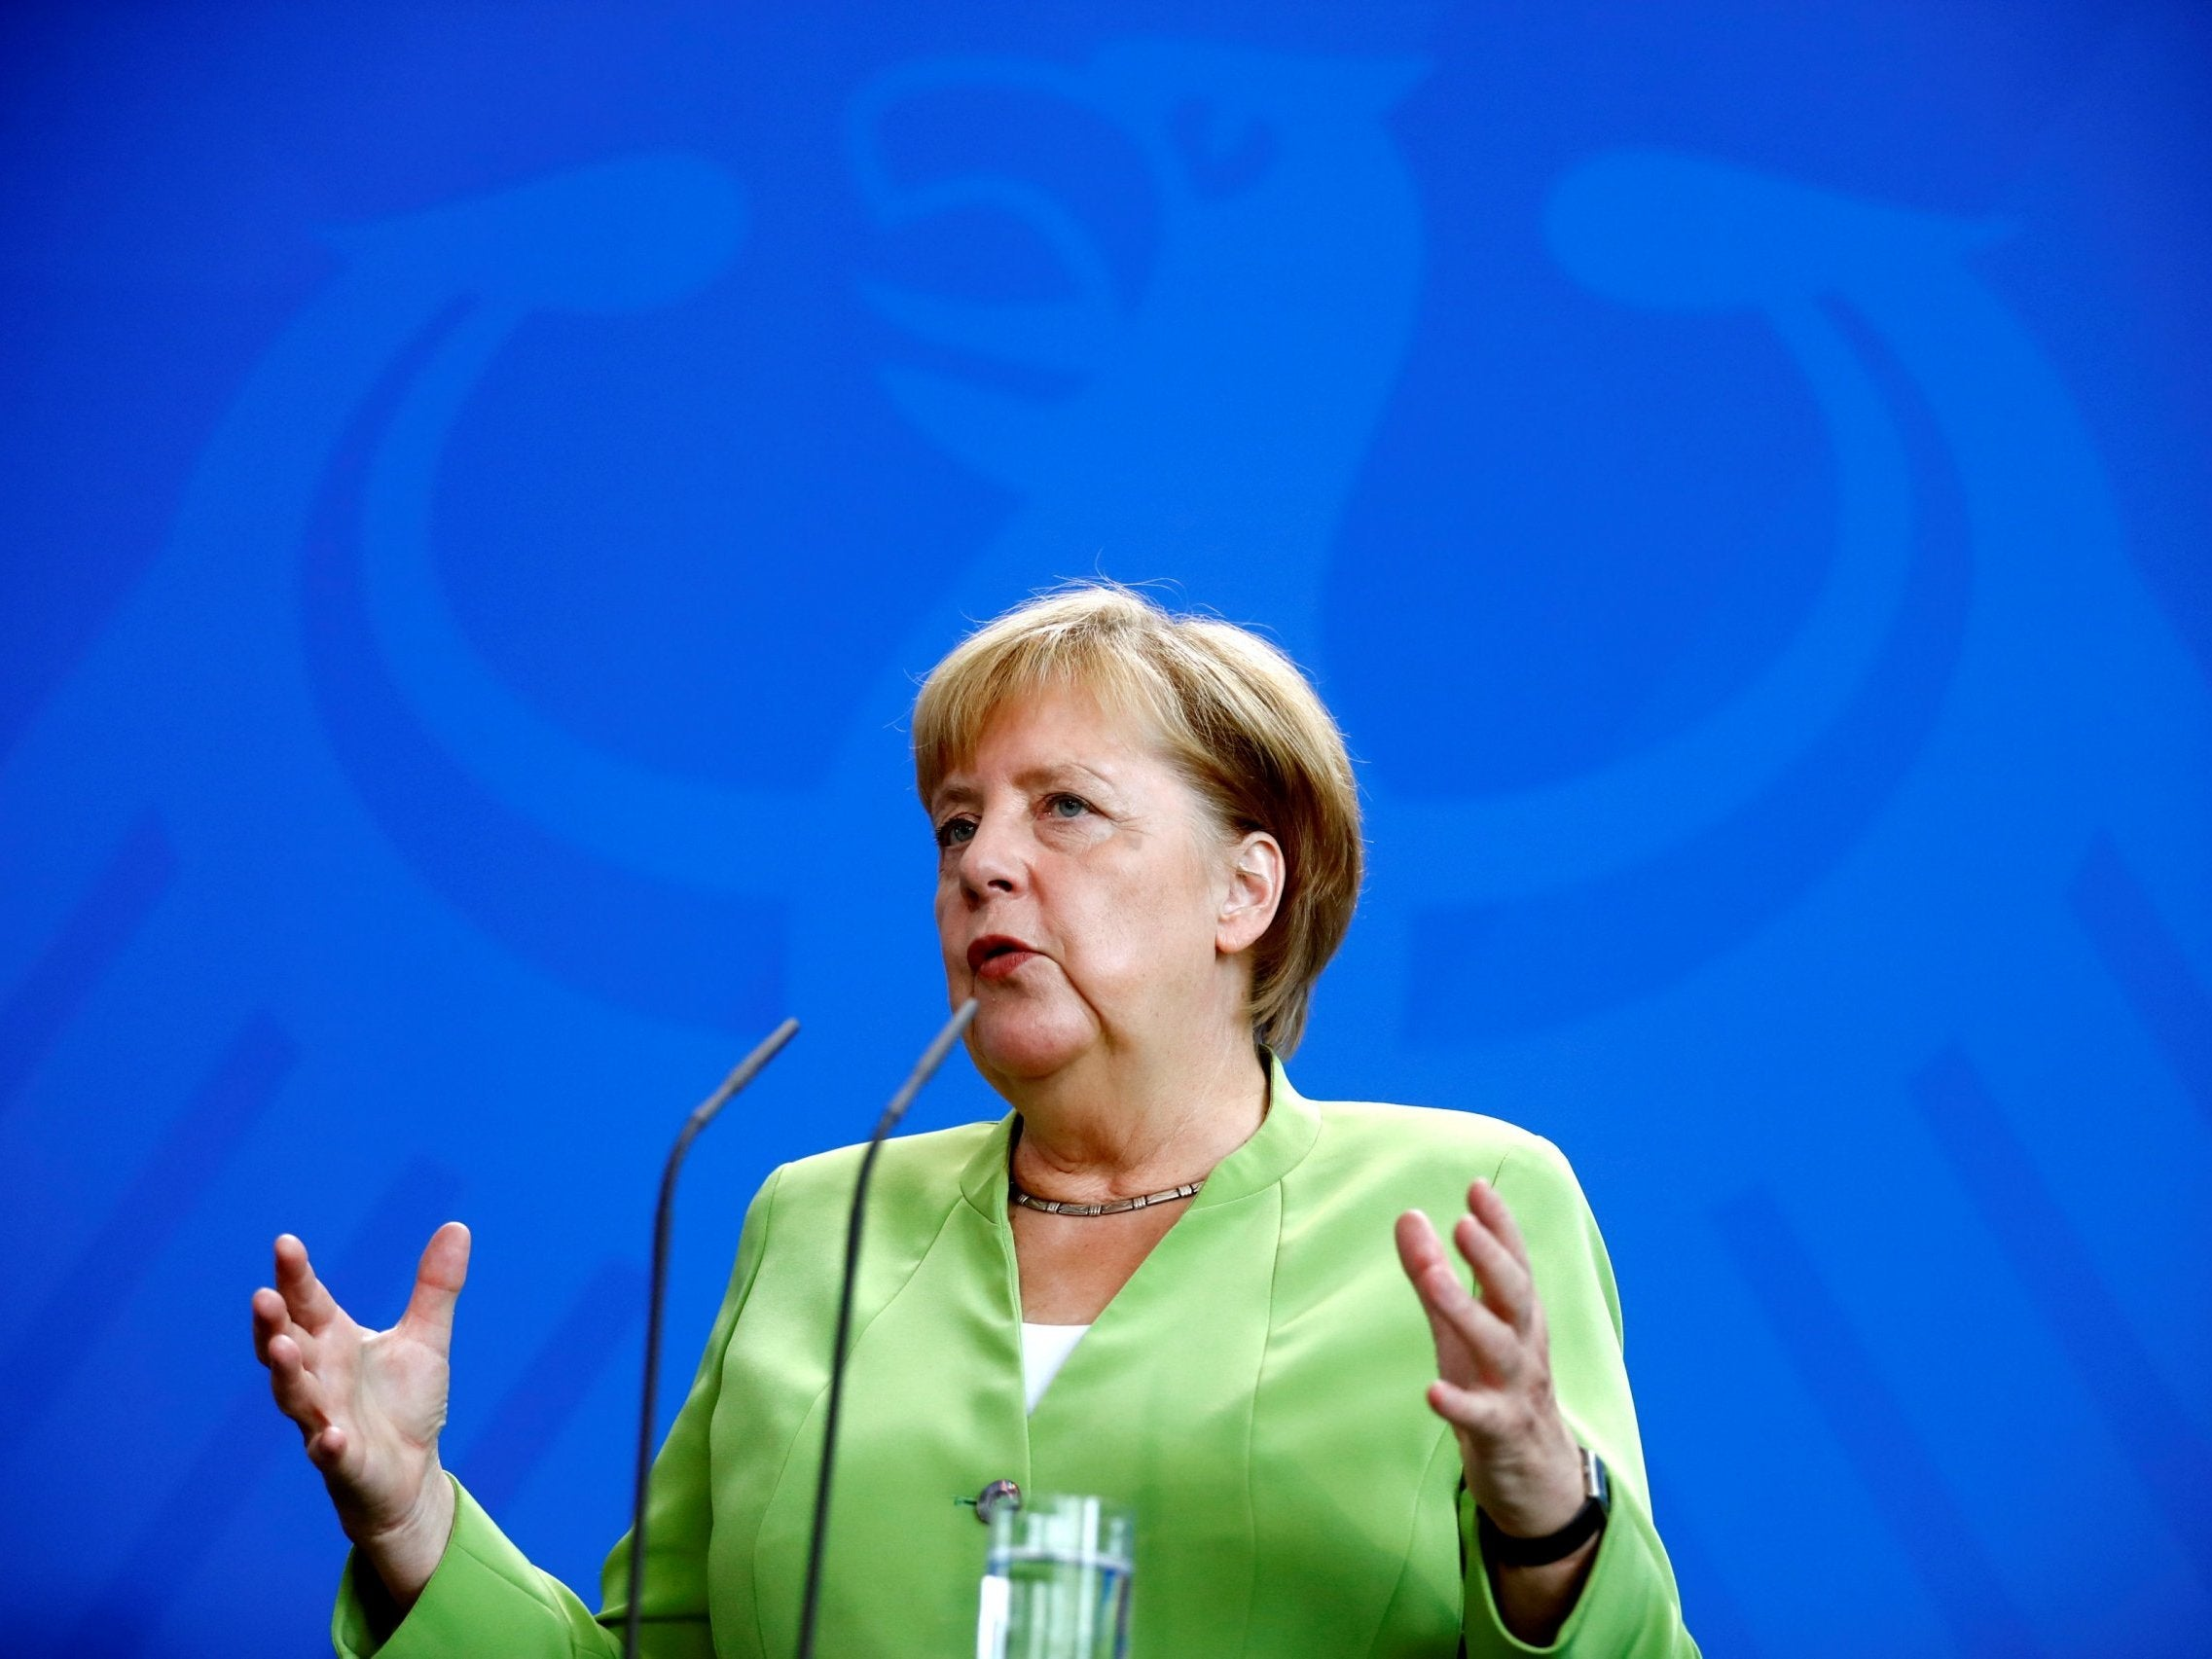 After England's exit from the EU, Merkel saw a real opportunity to take the place of the first 19